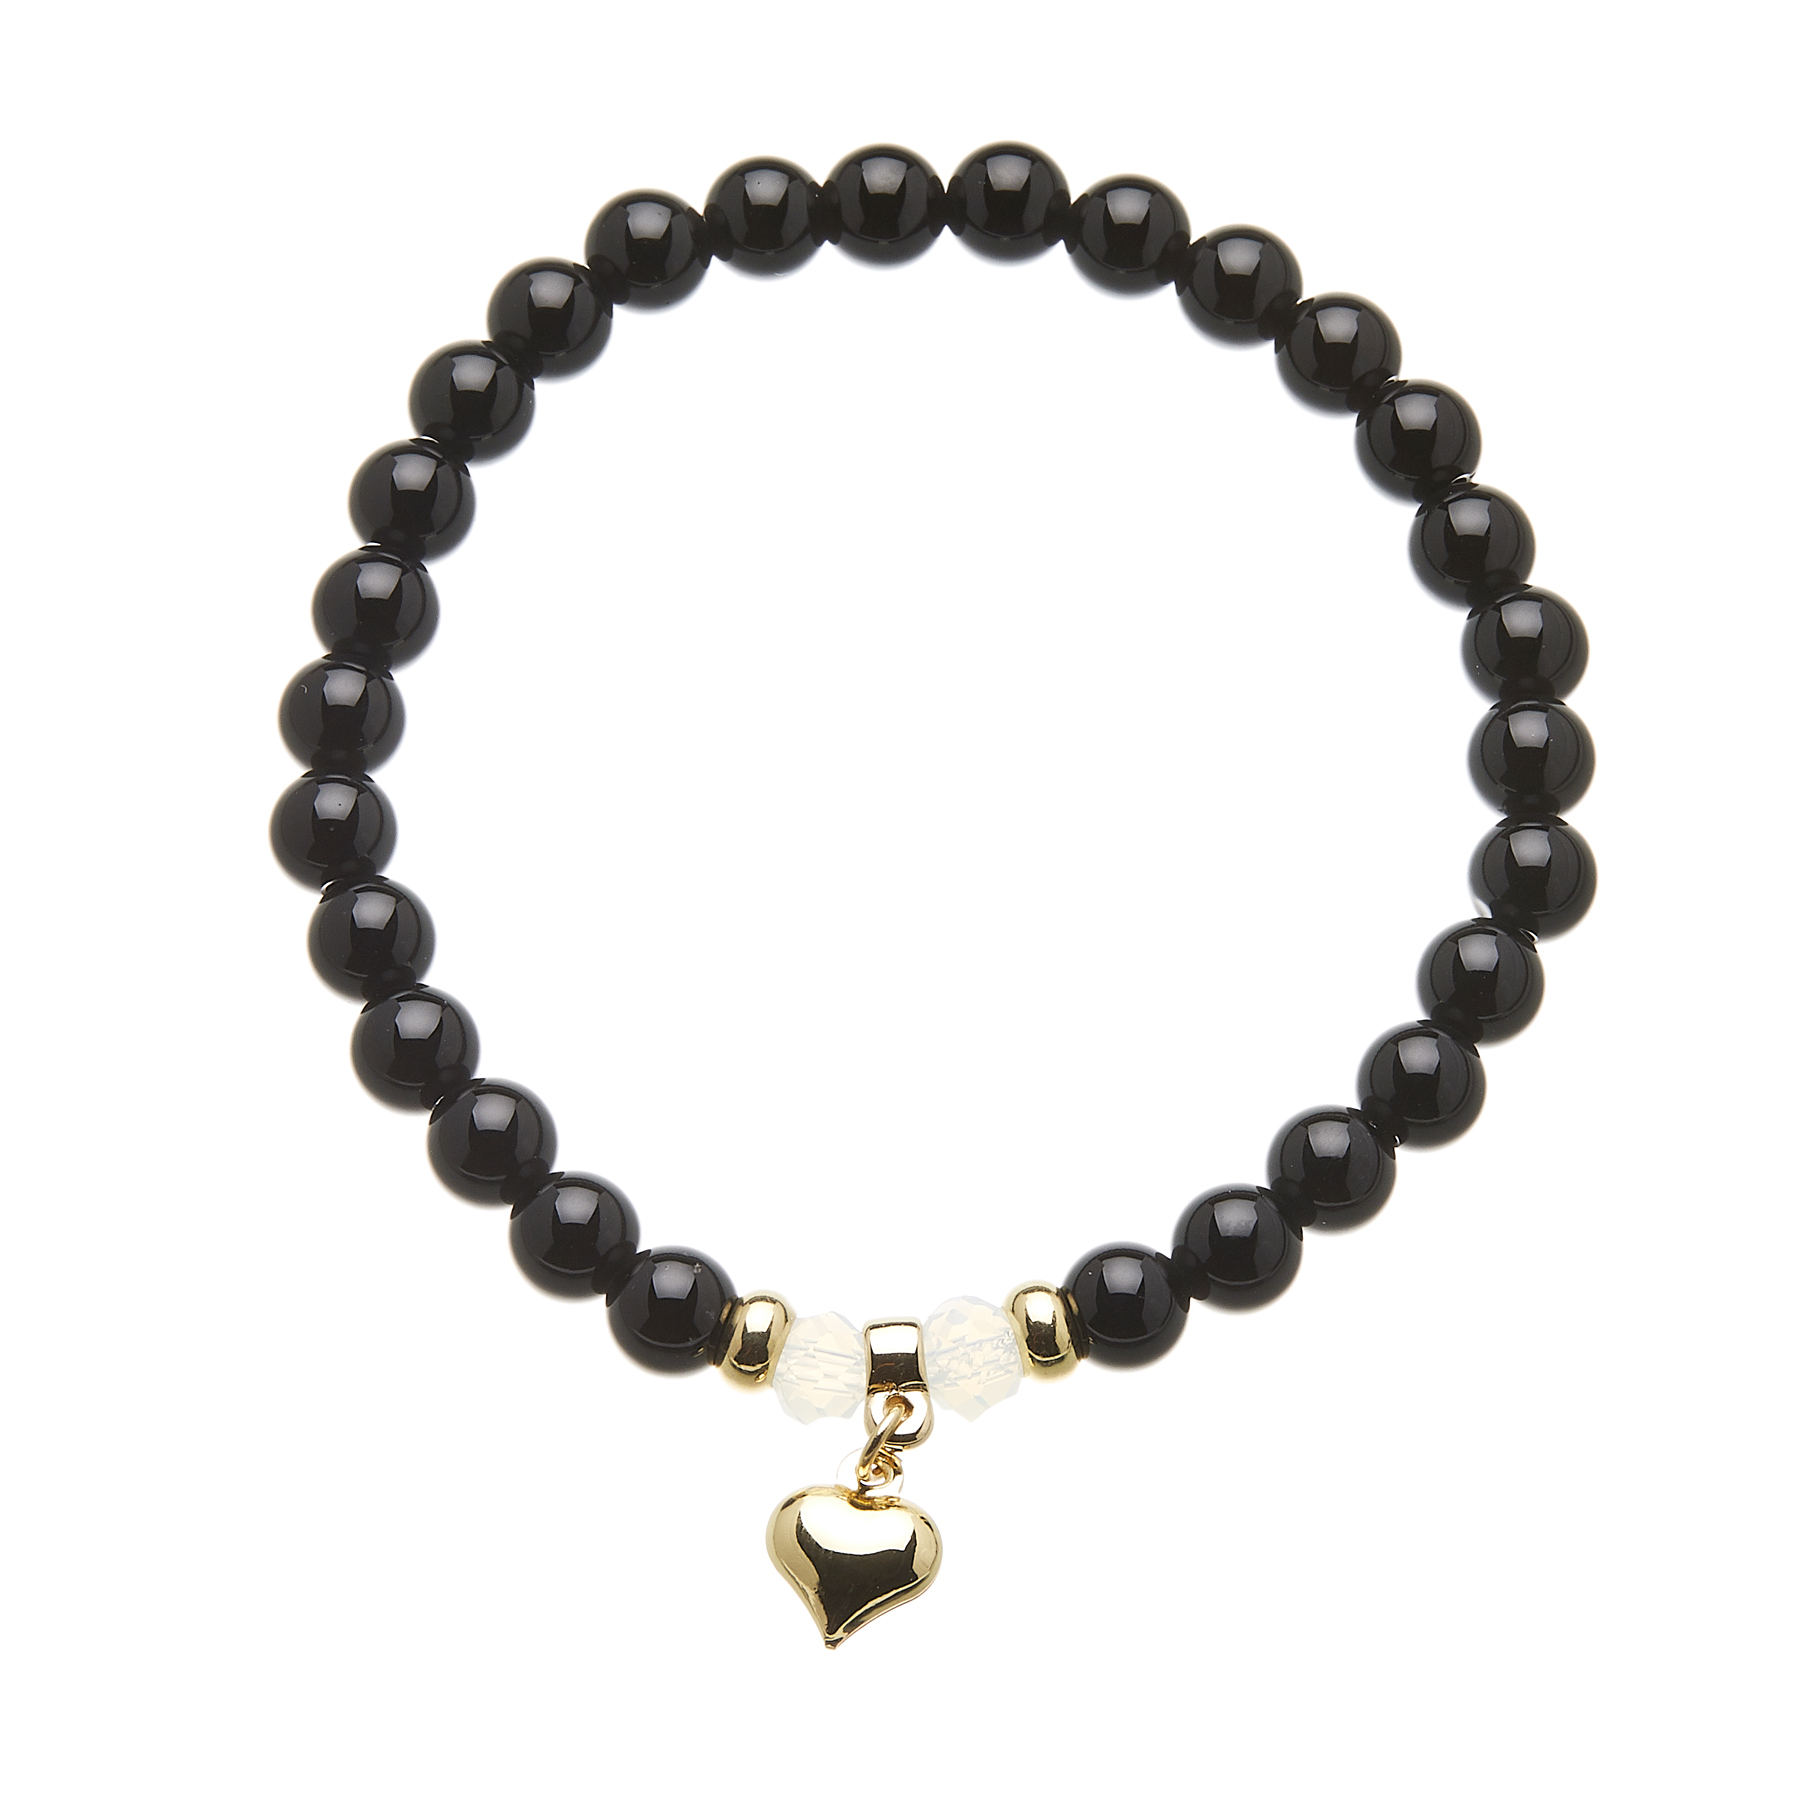 Black onyx beaded Bracelet with a gold heart charm - Rae B09